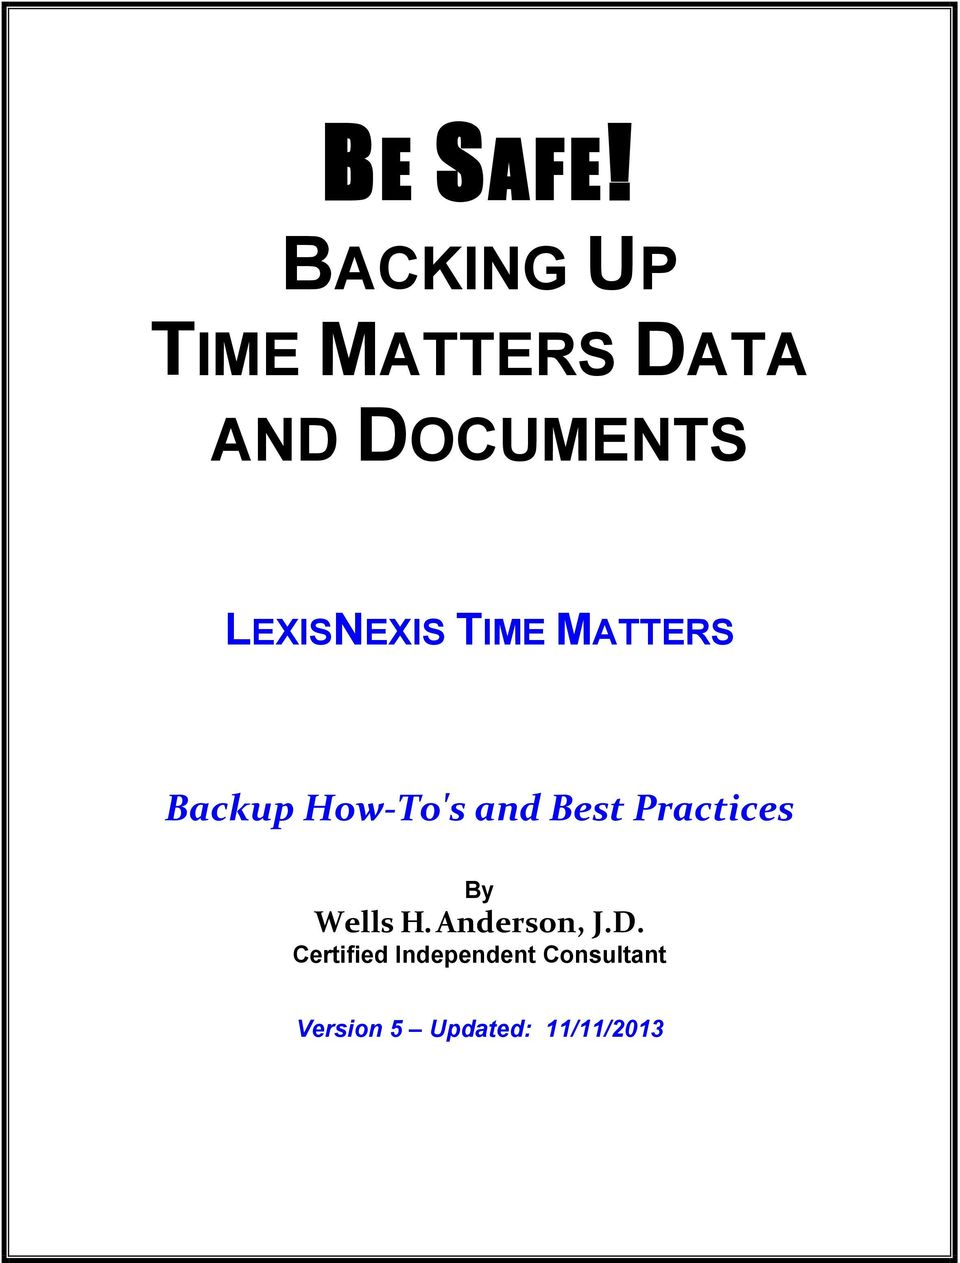 LEXISNEXIS TIME MATTERS Backup How-To's and Best